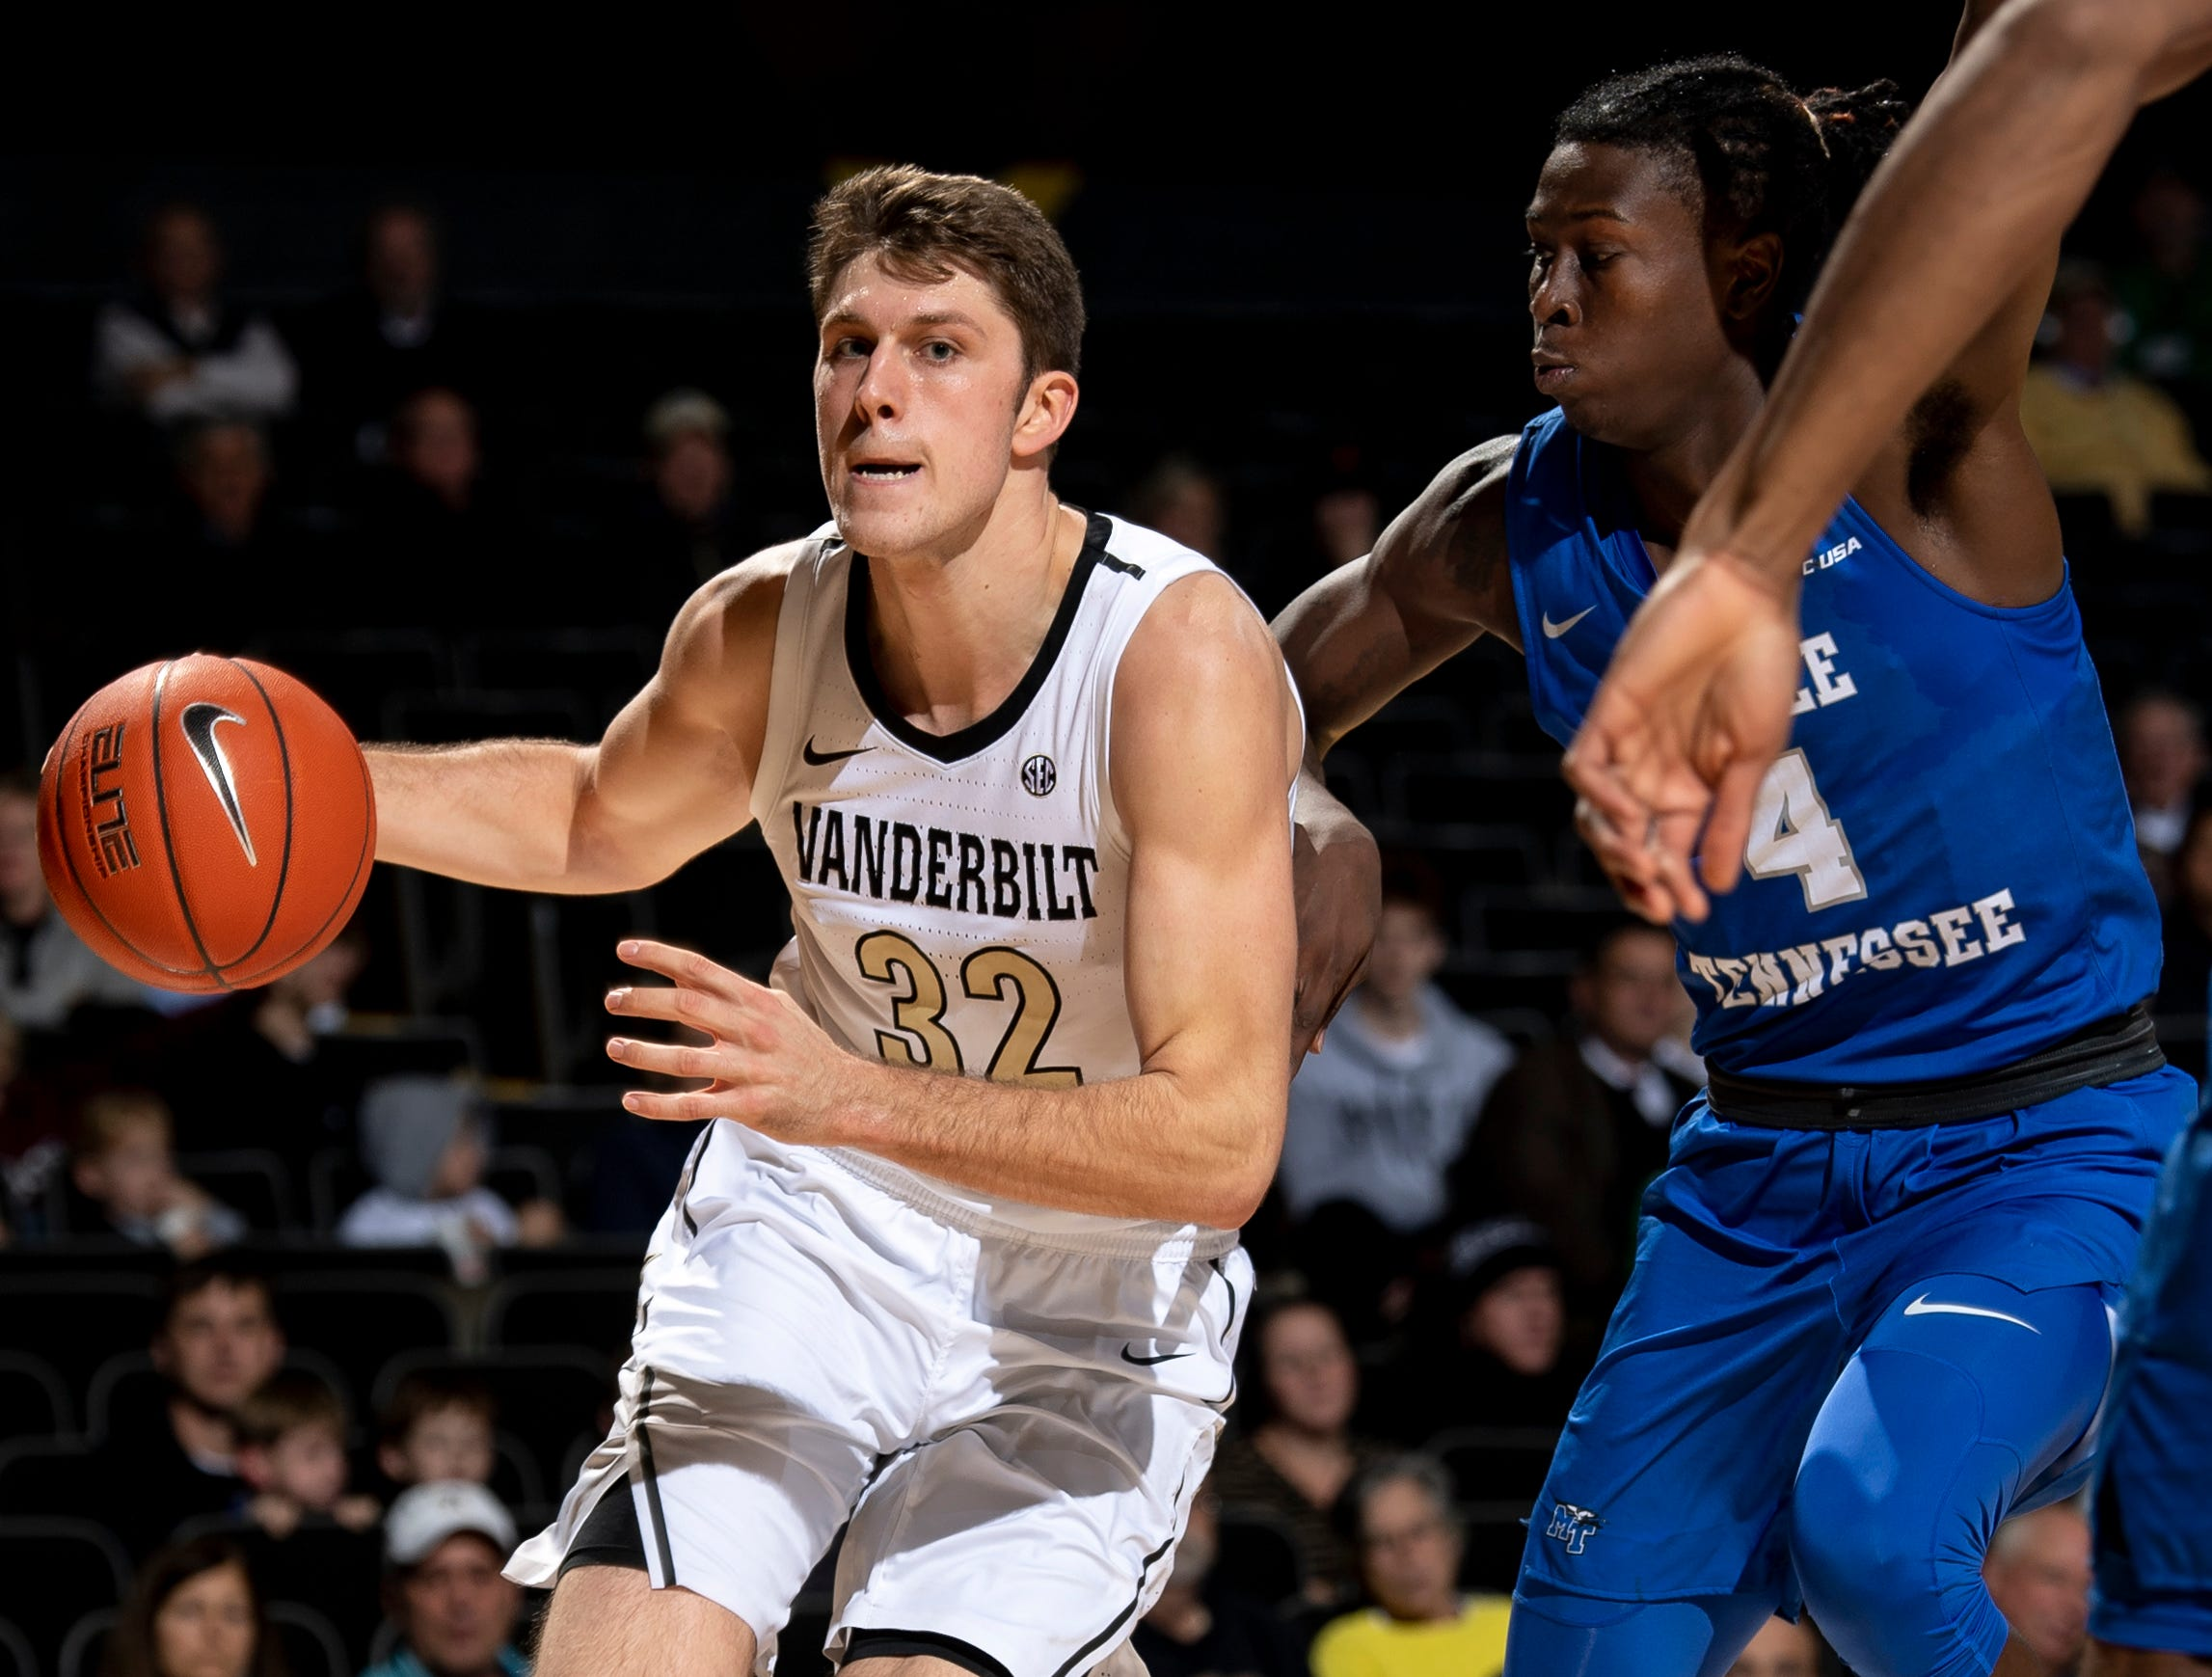 Vanderbilt forward Matt Ryan (32) battles with MTSU forward James Hawthorne (4) during the second half at Memorial Gym in Nashville, Tenn., Wednesday, Dec. 5, 2018.